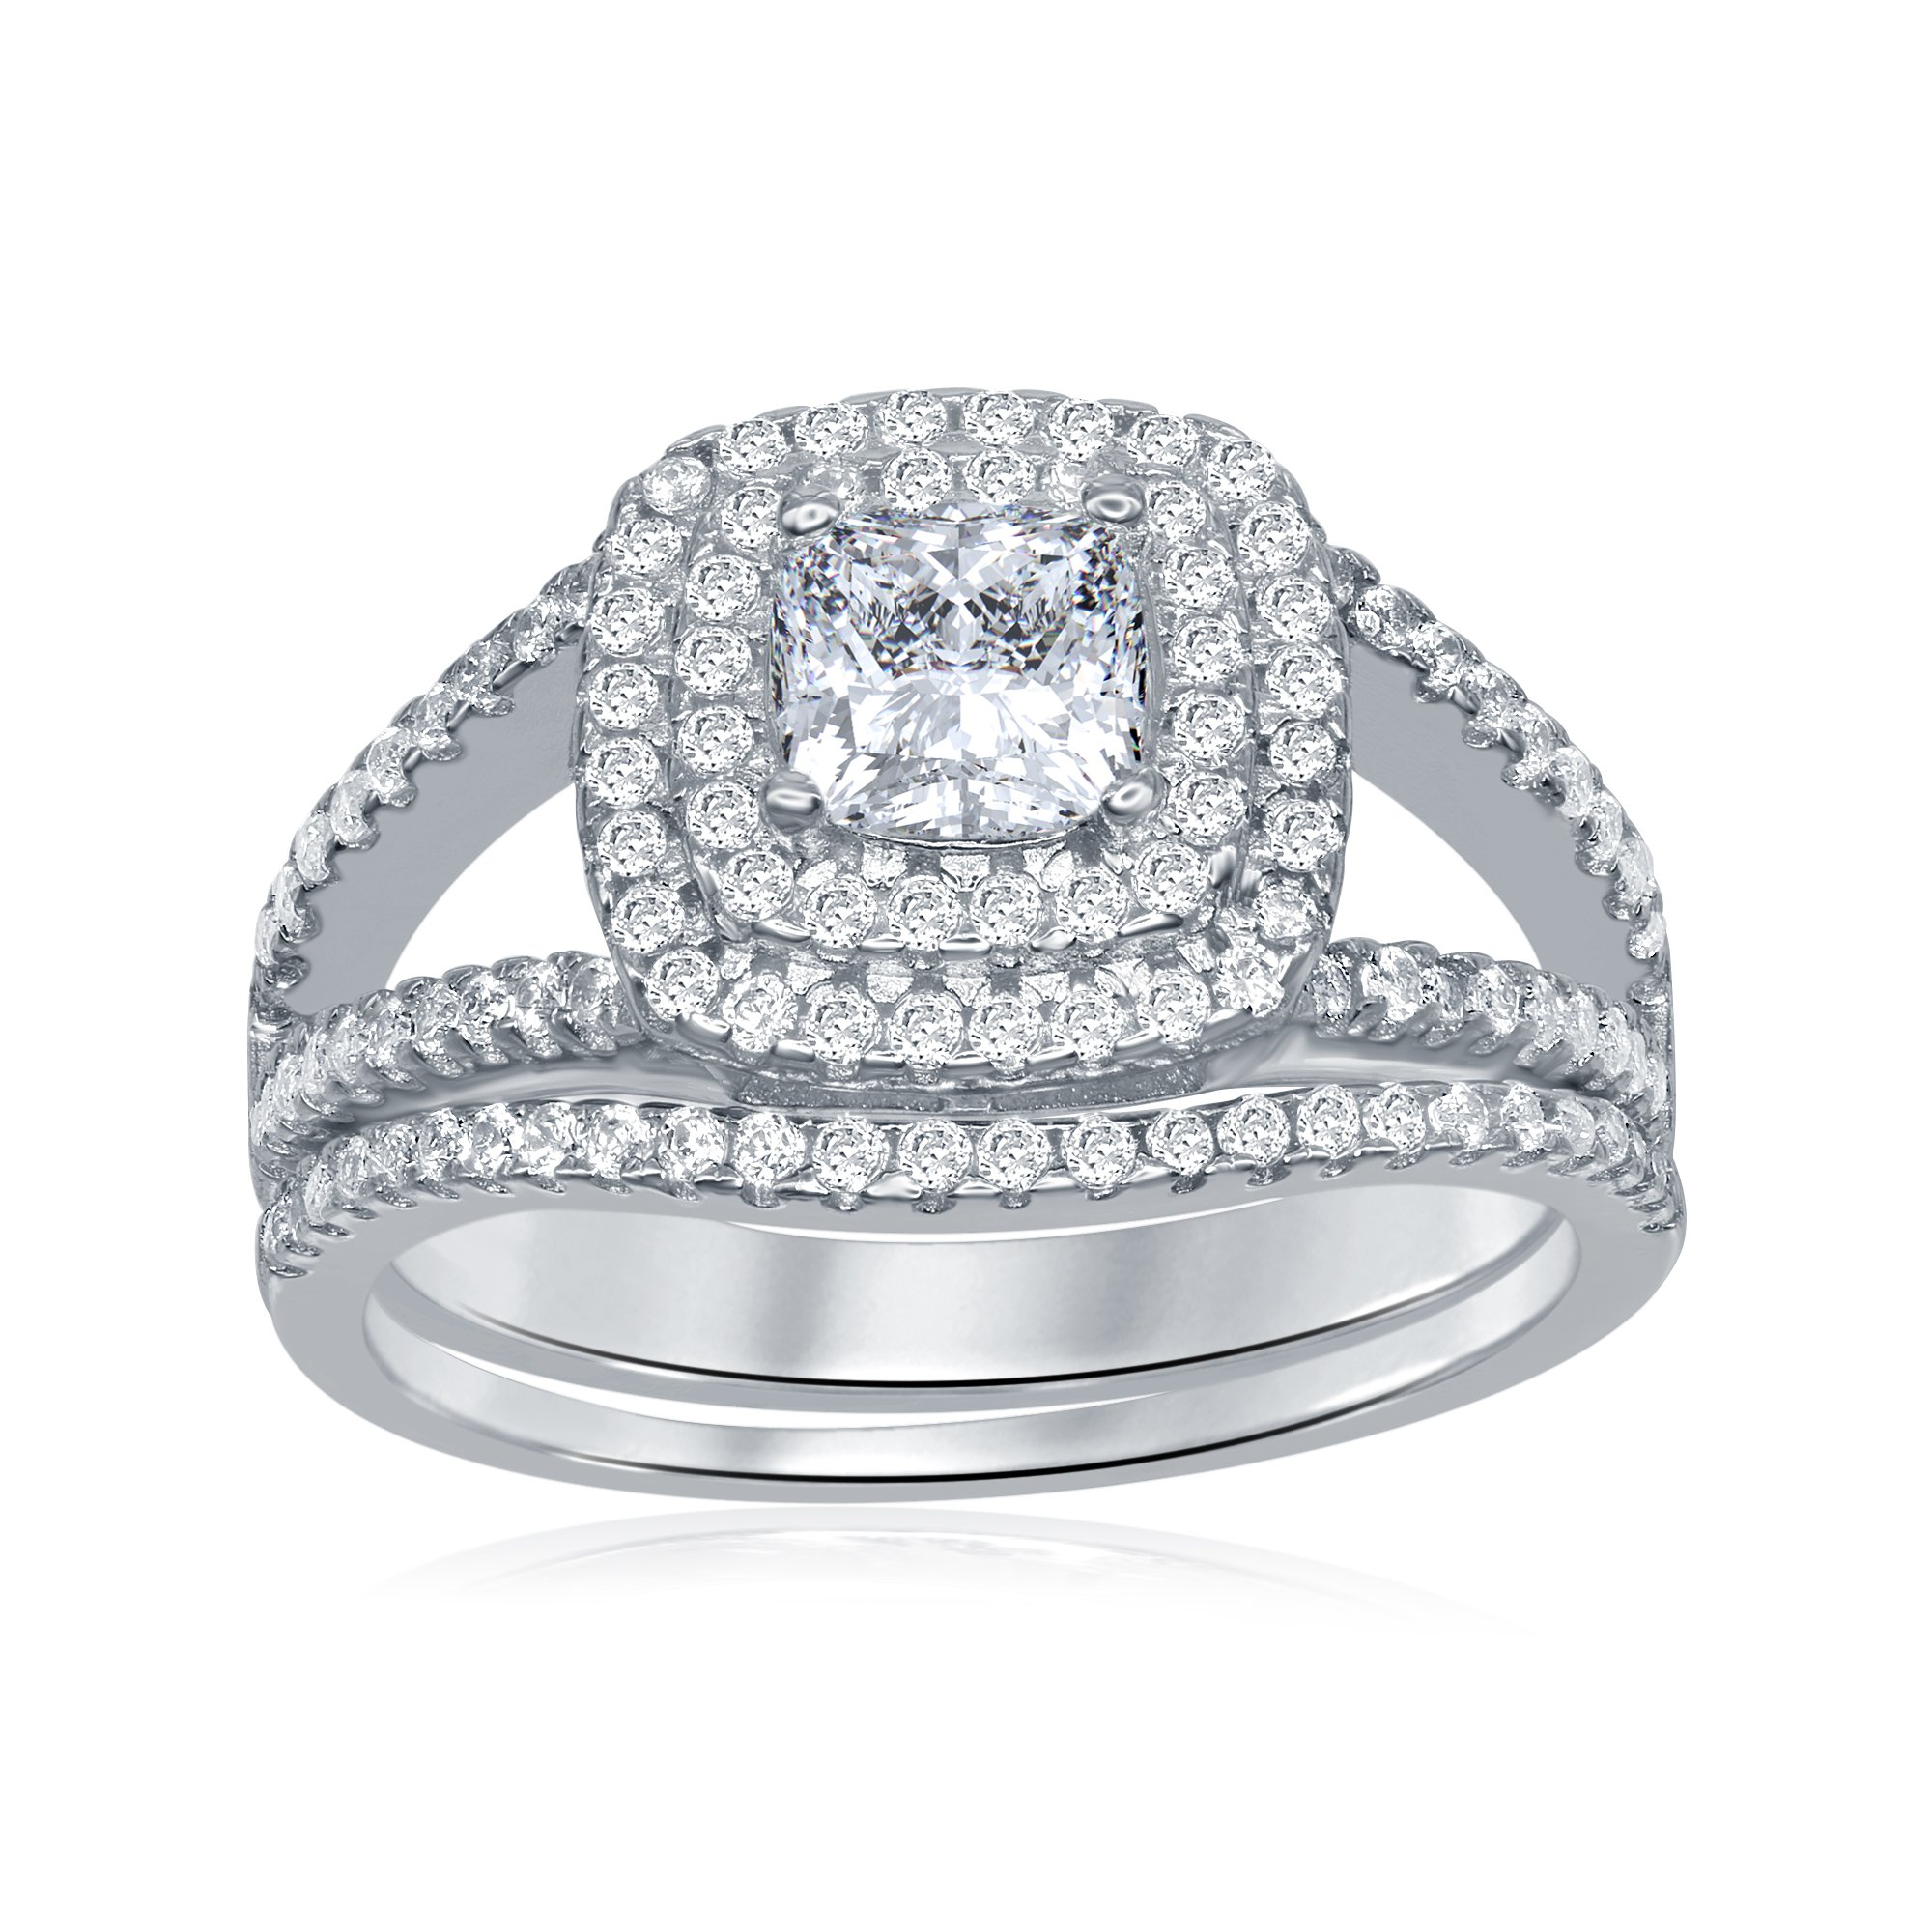 AceLay Womens Gift Bridal Set Brilliant Cubic Zirconia 925 Sterling Silver Wedding Band Engagement Ring 2PC Size 5-10 Promise Anniversary Jewelry (7)